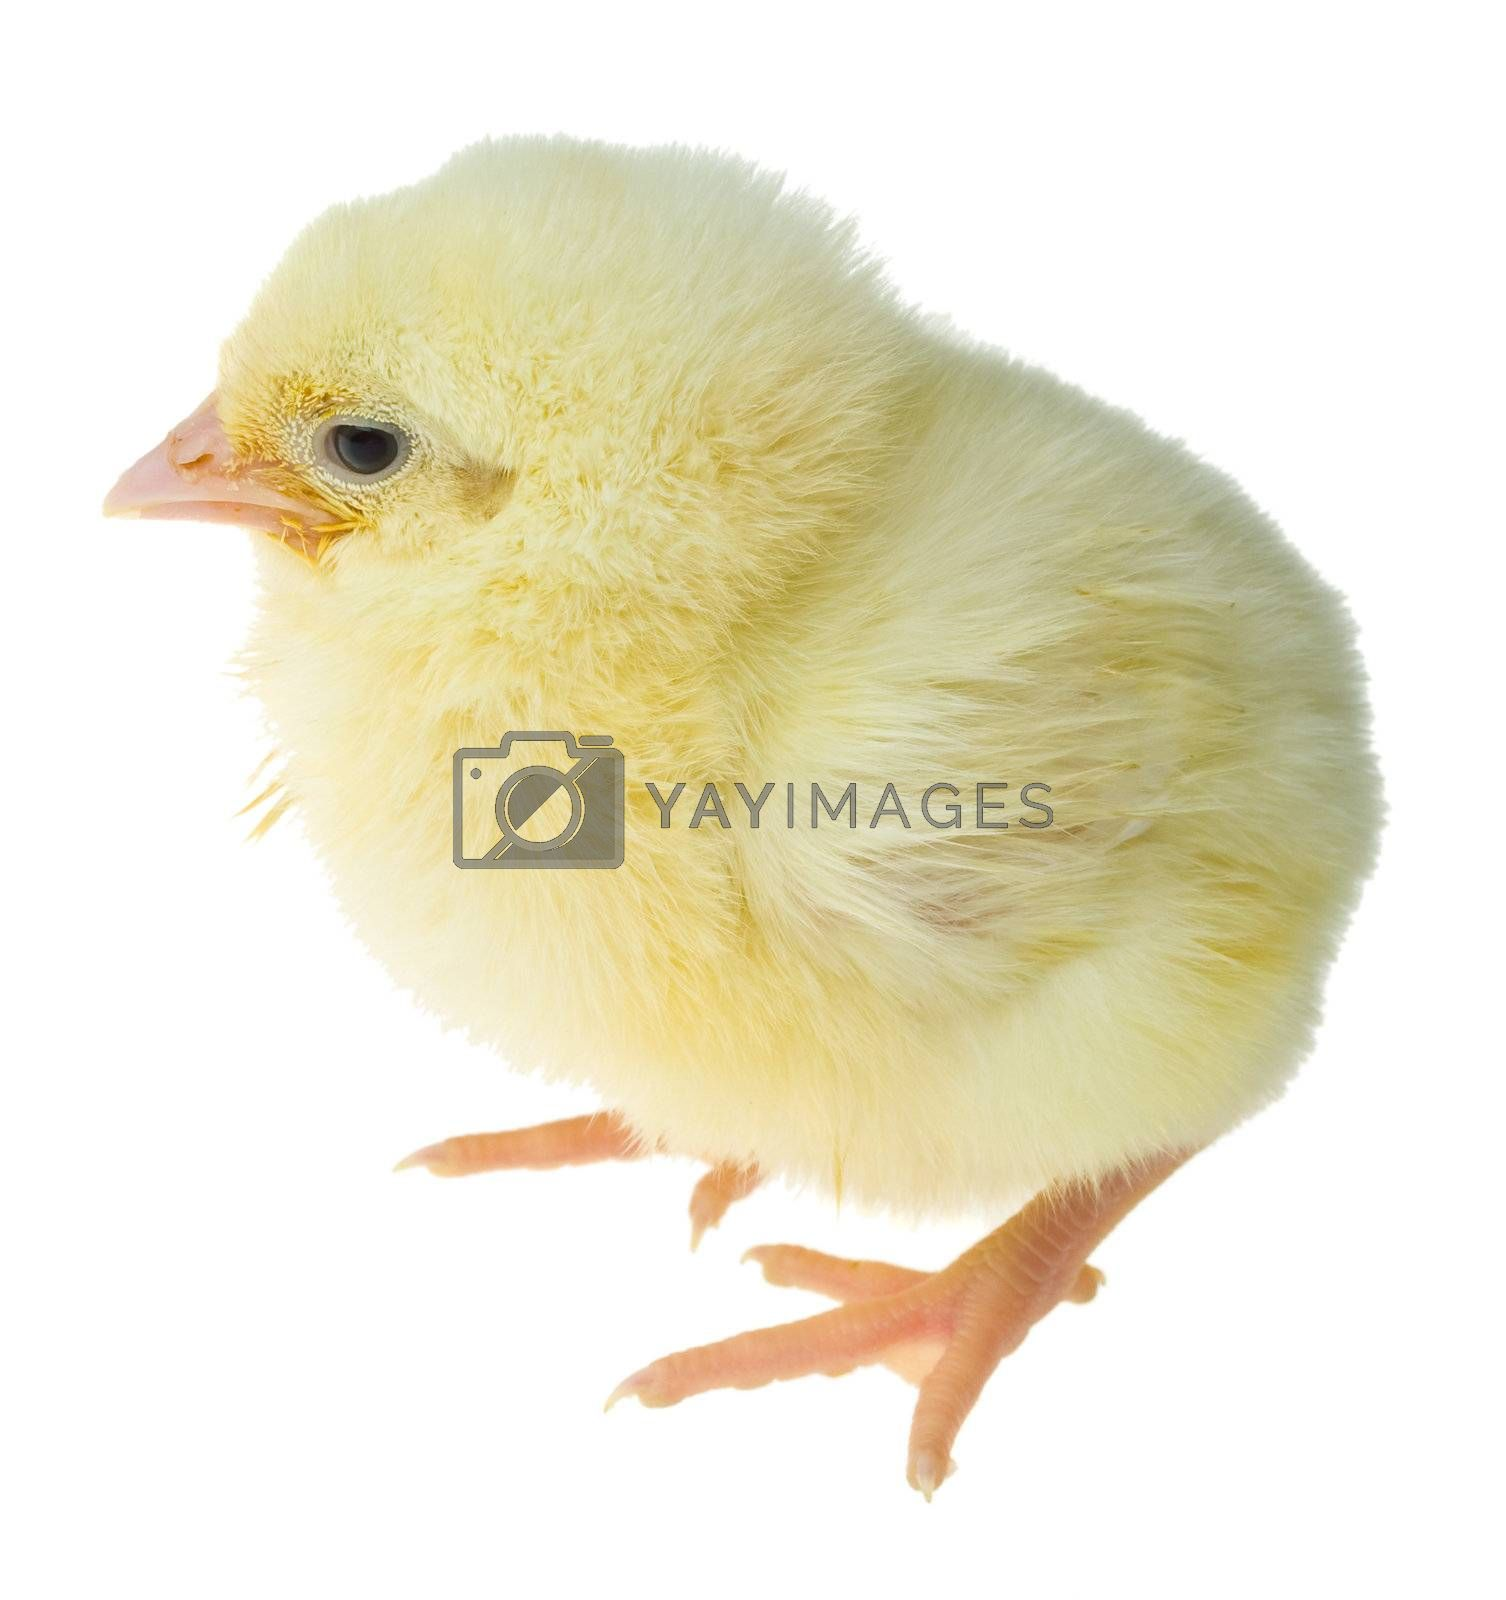 Royalty free image of single chick by Alekcey